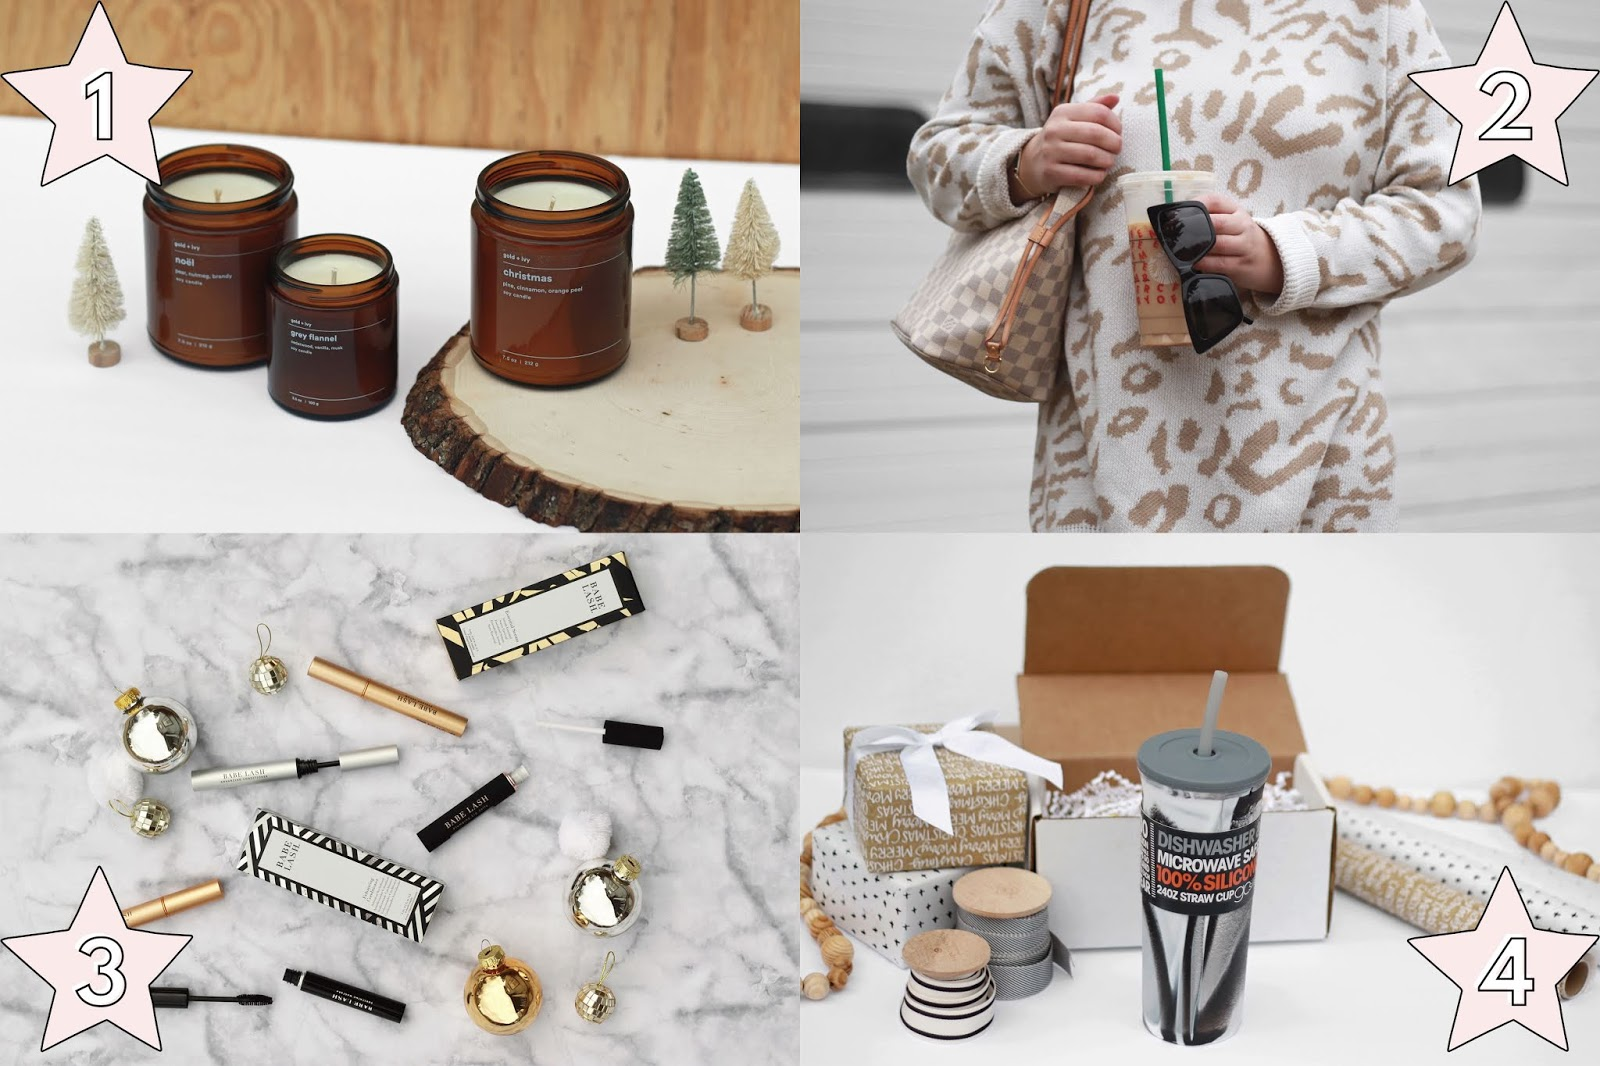 unique holiday gift ideas for her, gold and ivy handpoured soy candles gift idea for her, eleventh hour sunglasses gift idea for her, babe lash holiday gifts for her, go sili silicone cup and straw gift idea for her, holiday christmas gift ideas for her